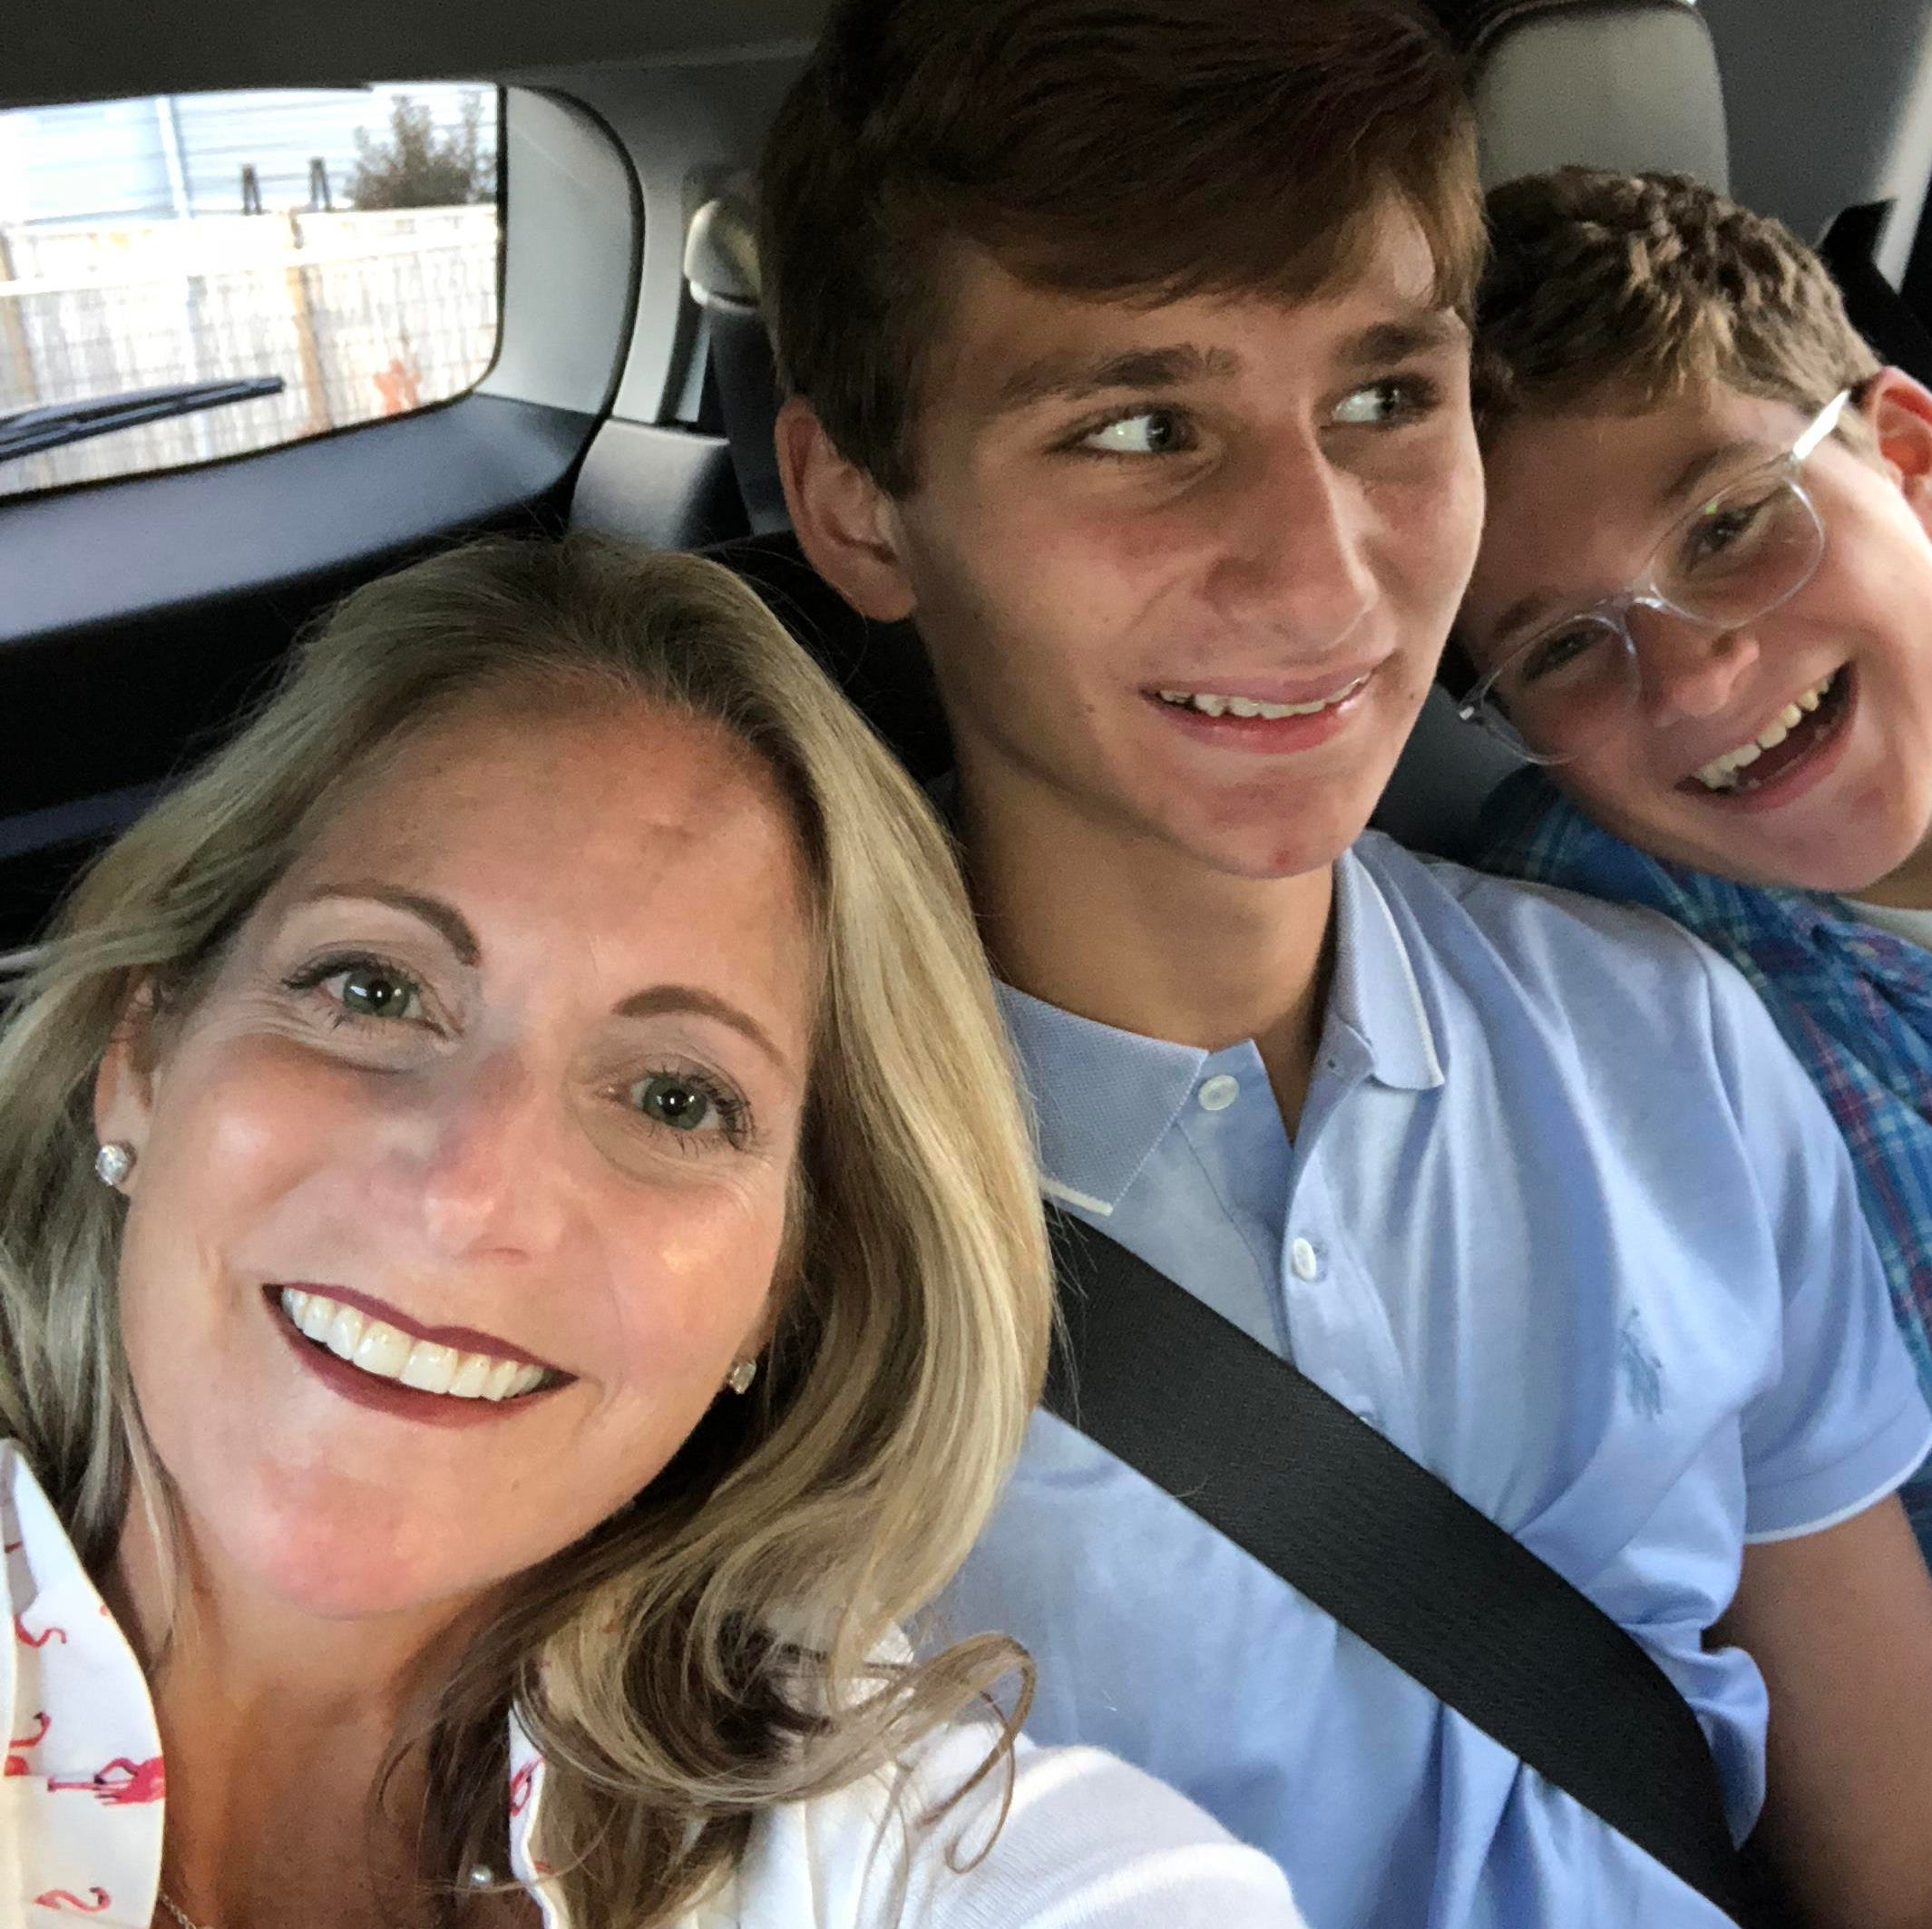 Elise Tedeschi, happy and healthy, clowns with her two sons after surviving stage 4 pancreatic cancer.